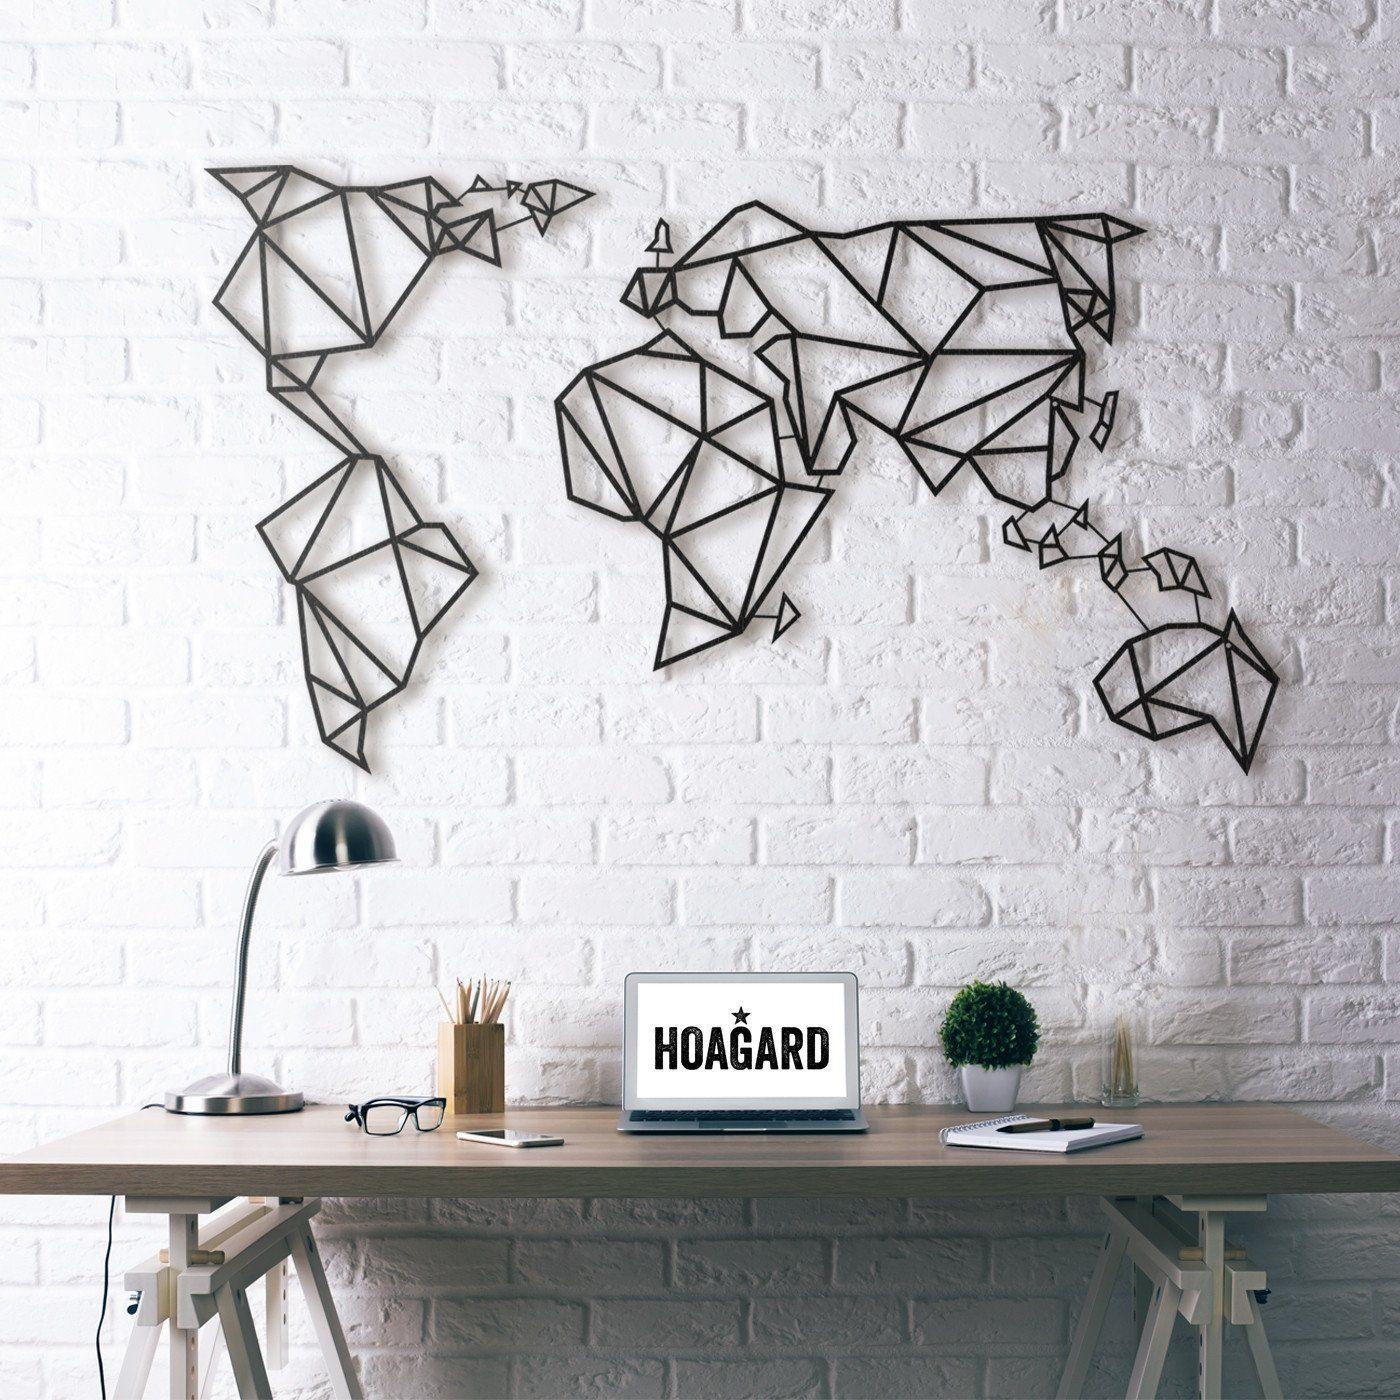 hogard wall art world map the castle pinterest. Black Bedroom Furniture Sets. Home Design Ideas